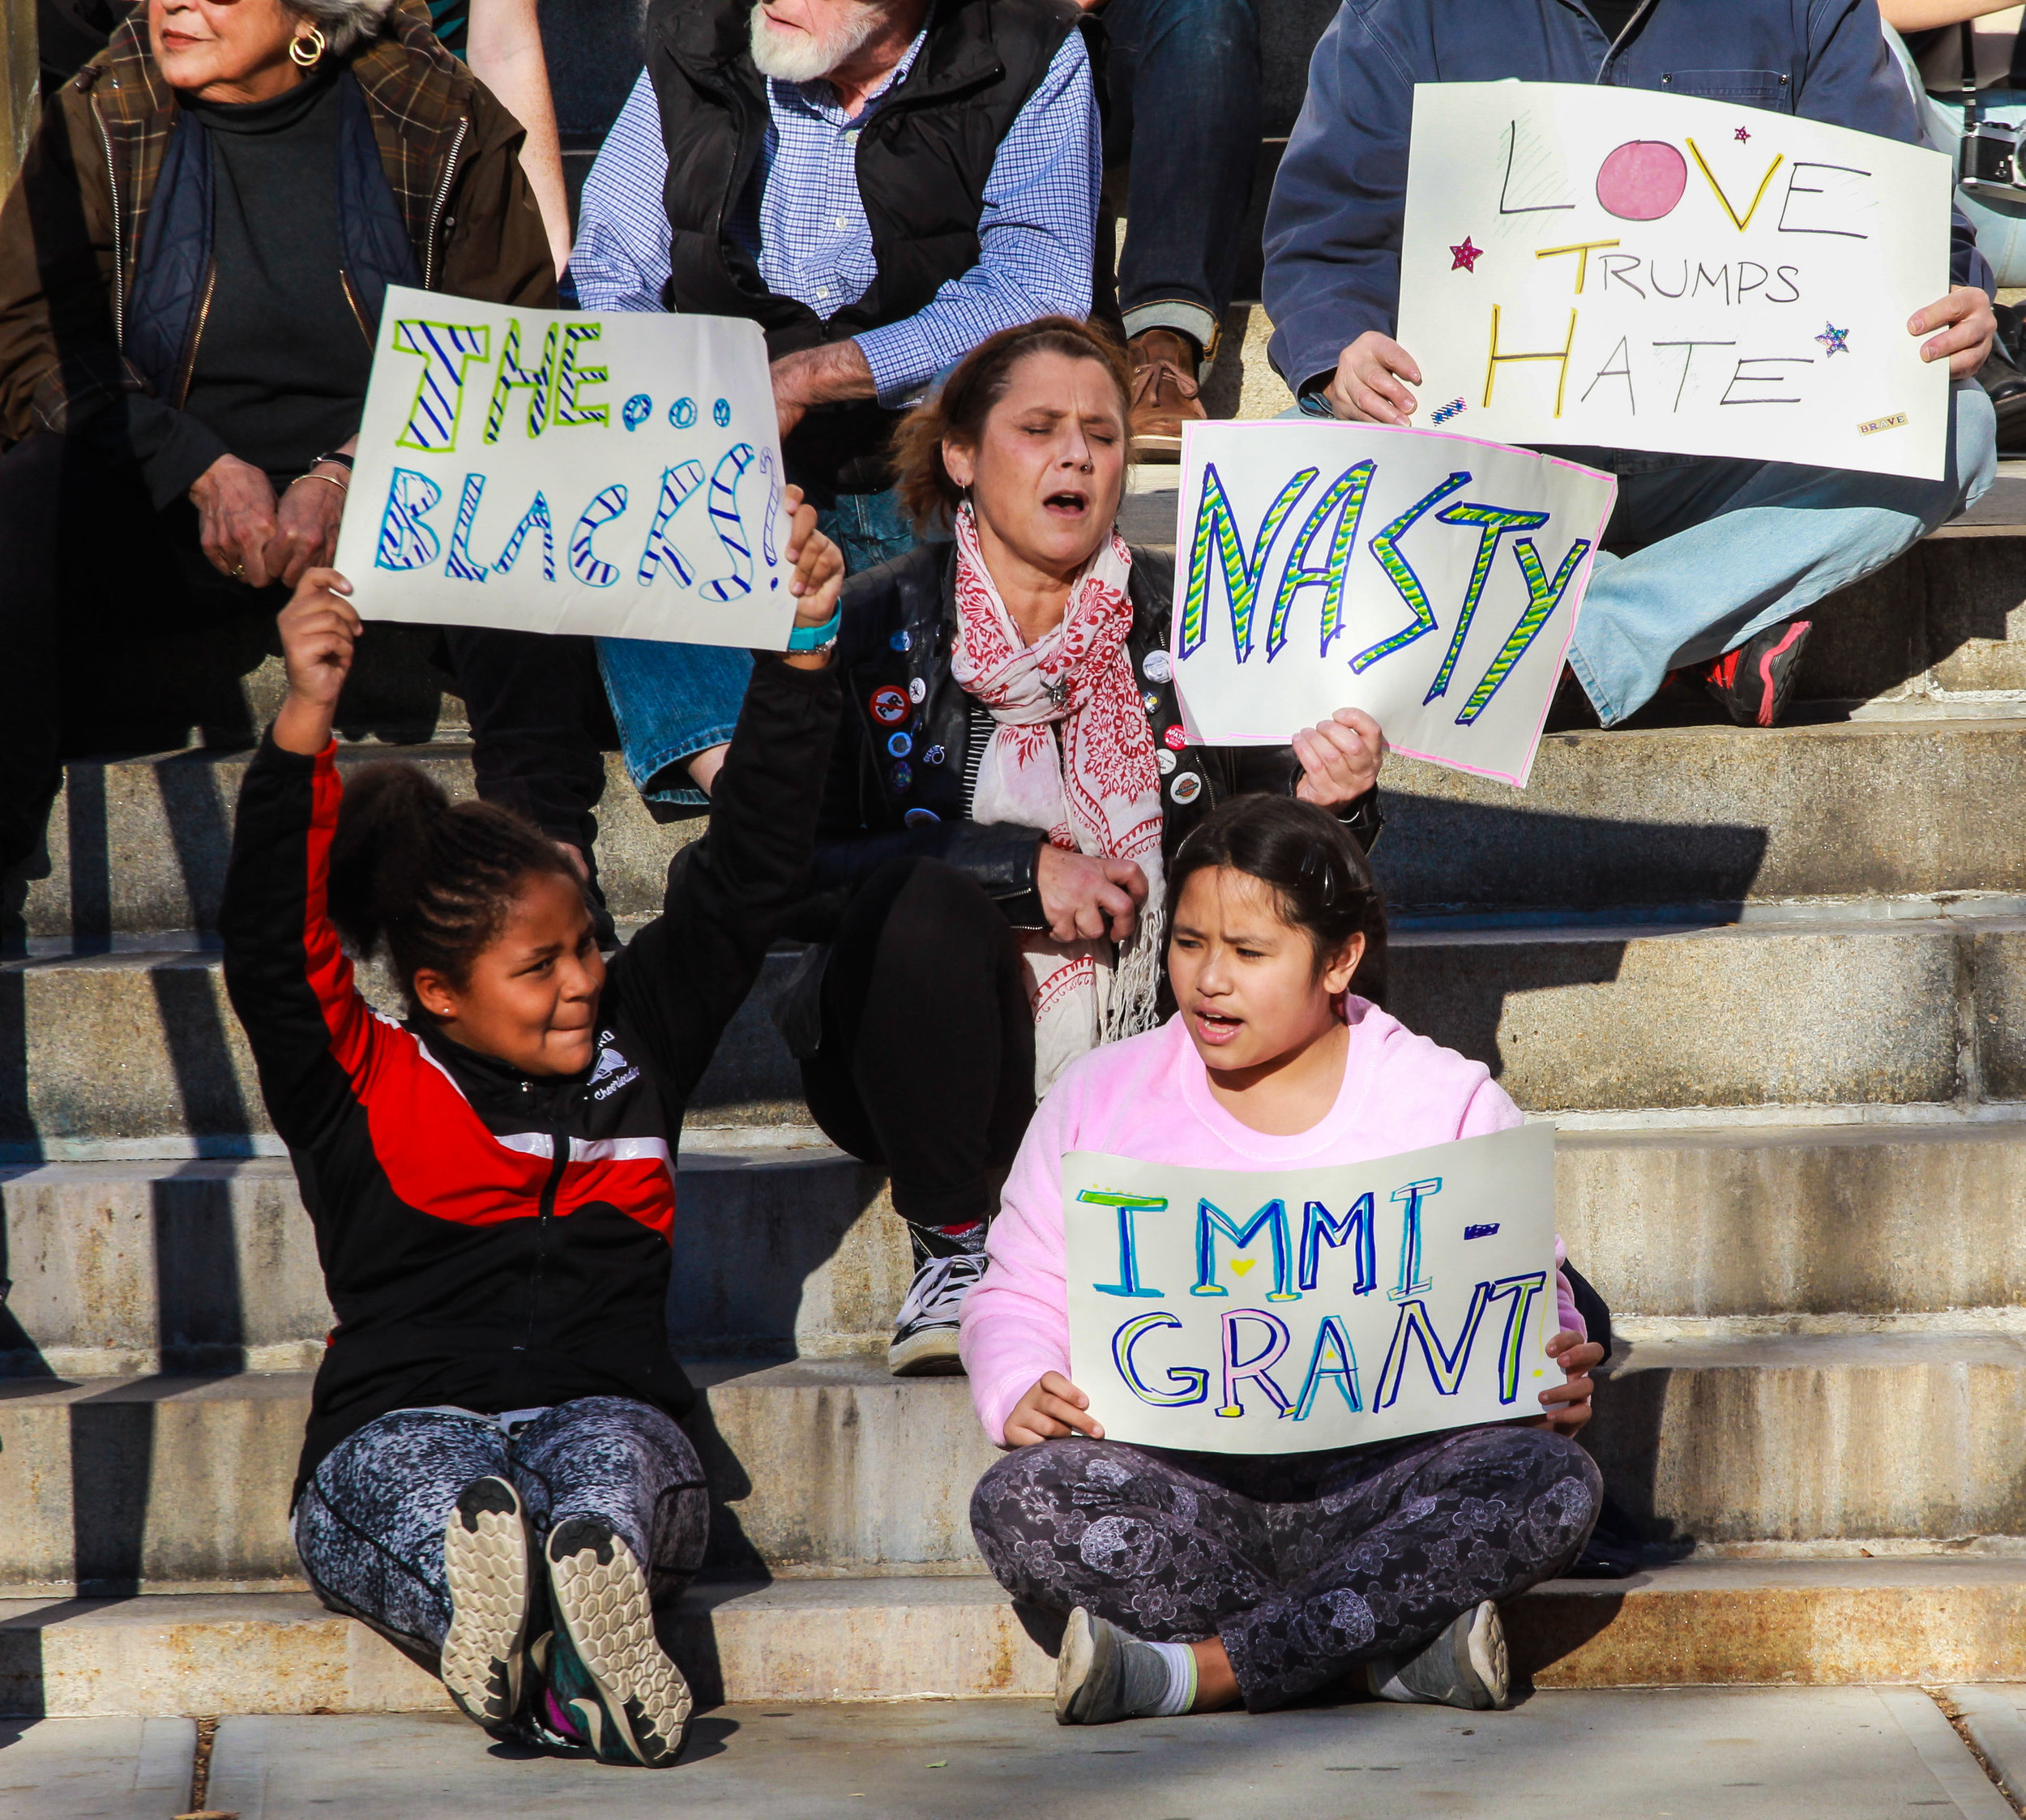 New Haven, Connecticut - November 13th, 2016: Children protesting with signs using words Trump had used in his campaign prior to being elected.